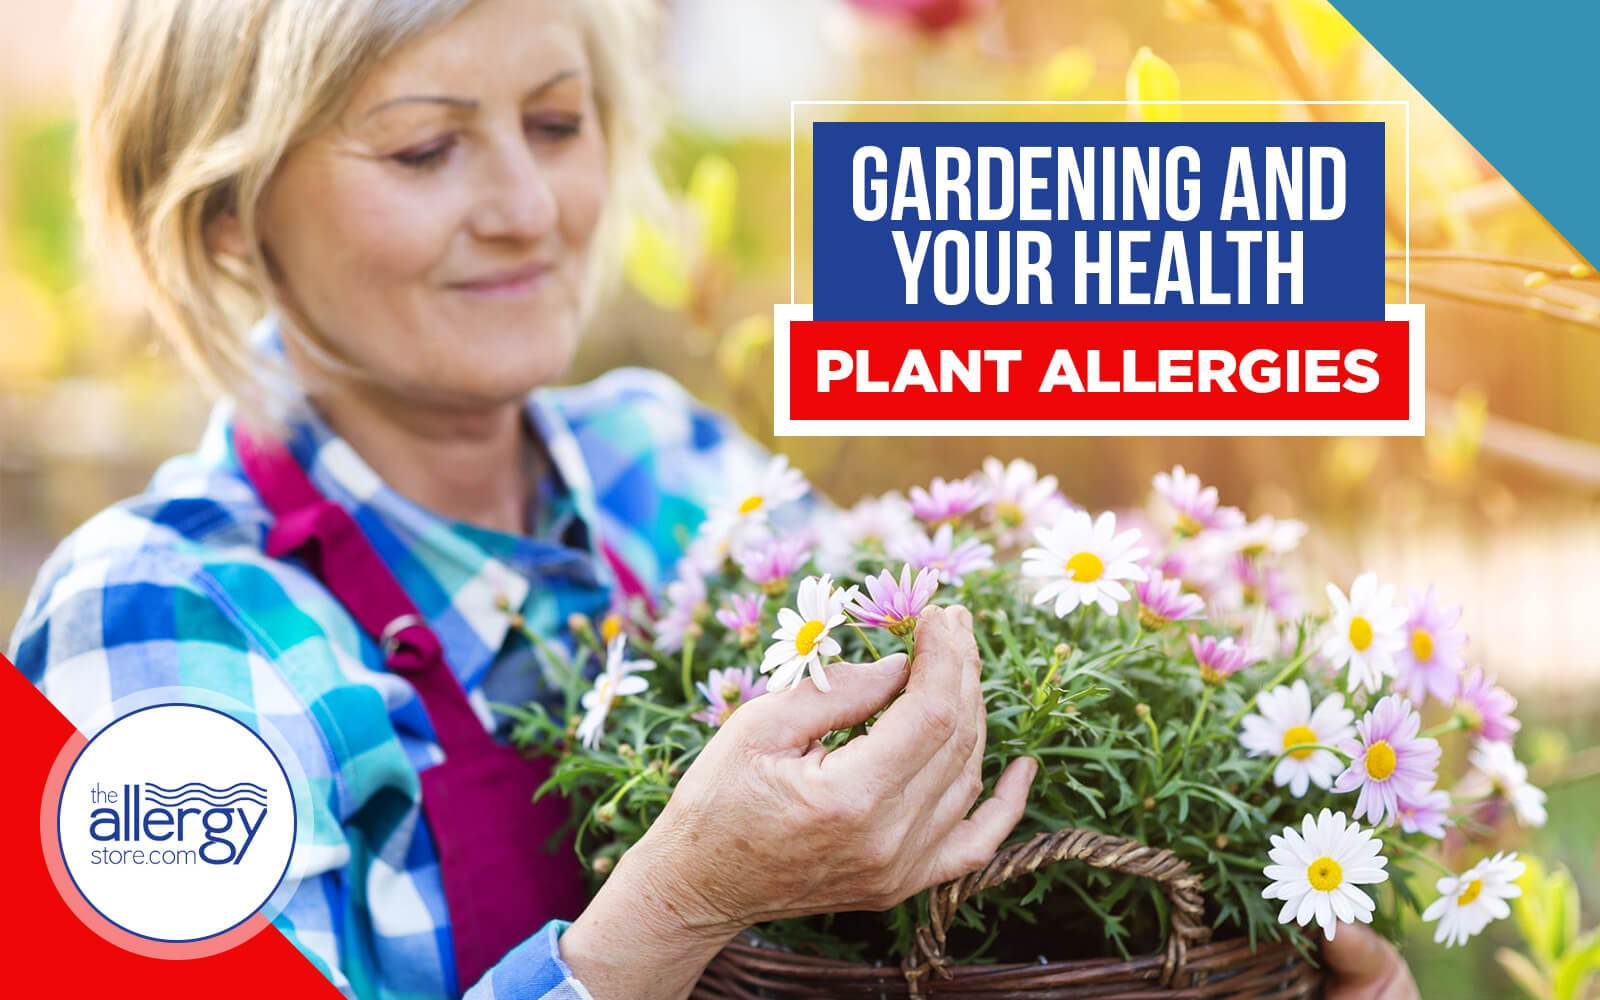 Gardening and Your Health - Plant Allergies